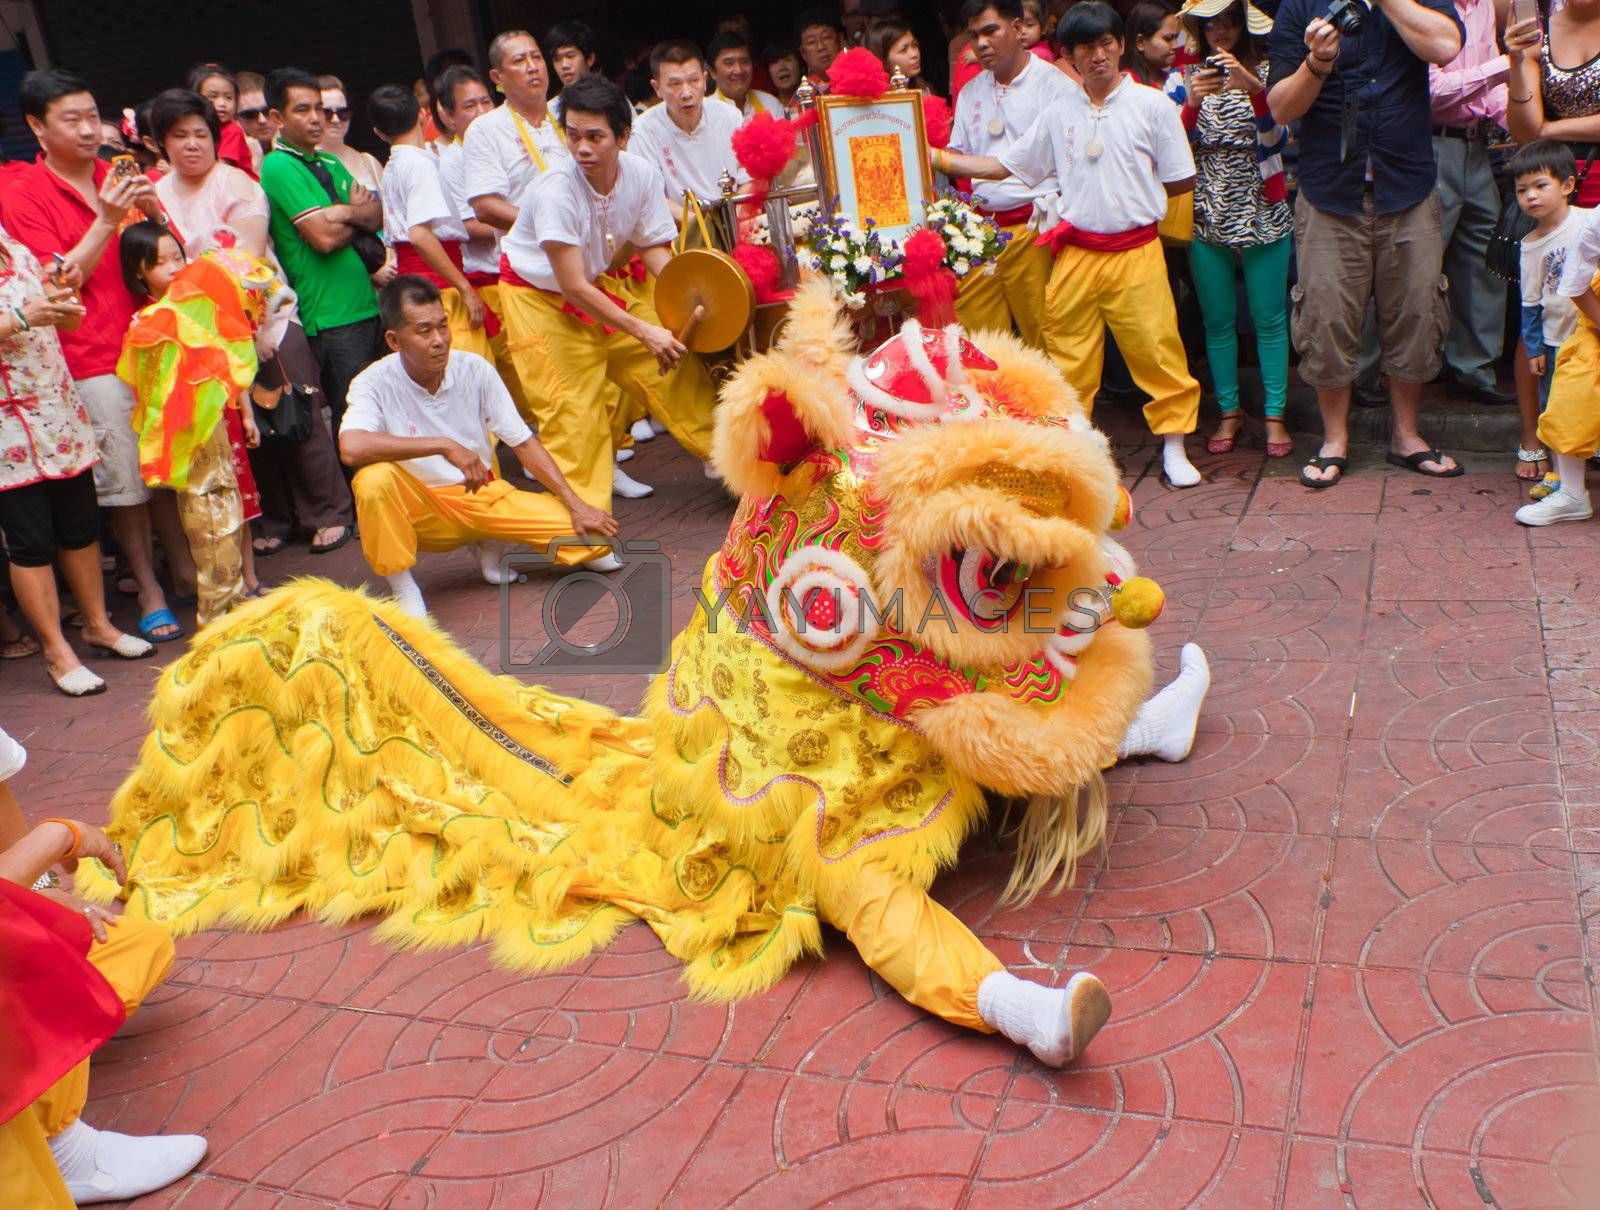 Royalty free image of BANGKOK,Chinatown/THAILAND-February 10:Chinese New Year traditions Chinese New Year Celebrations on February 10, 2013 in BANGKOK  by nikky1972